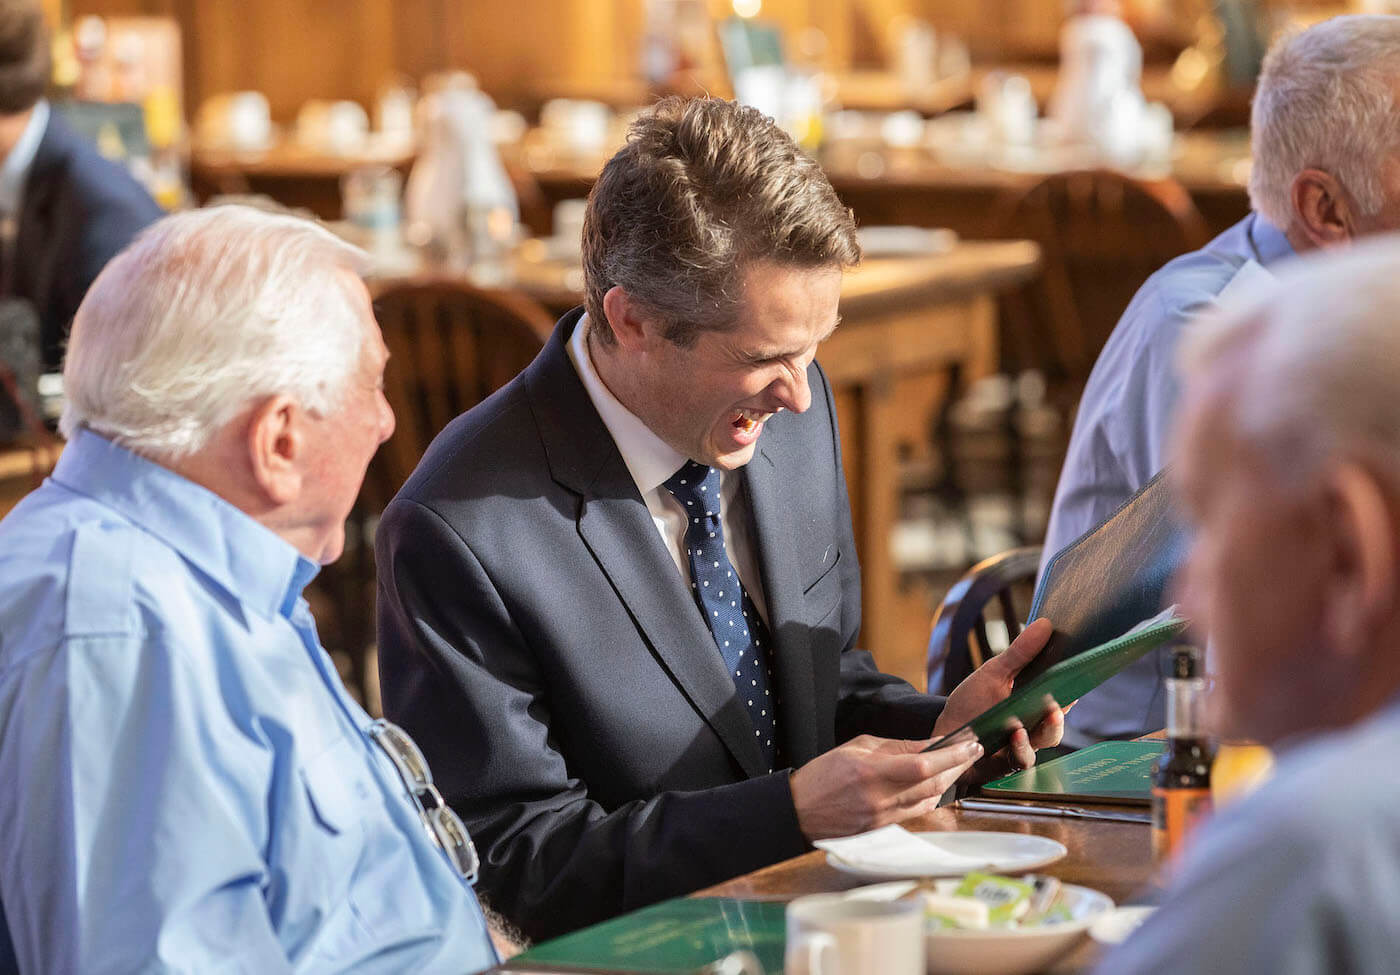 Dating For Seniors Makes It Easy To Find Single Seniors In Your Area